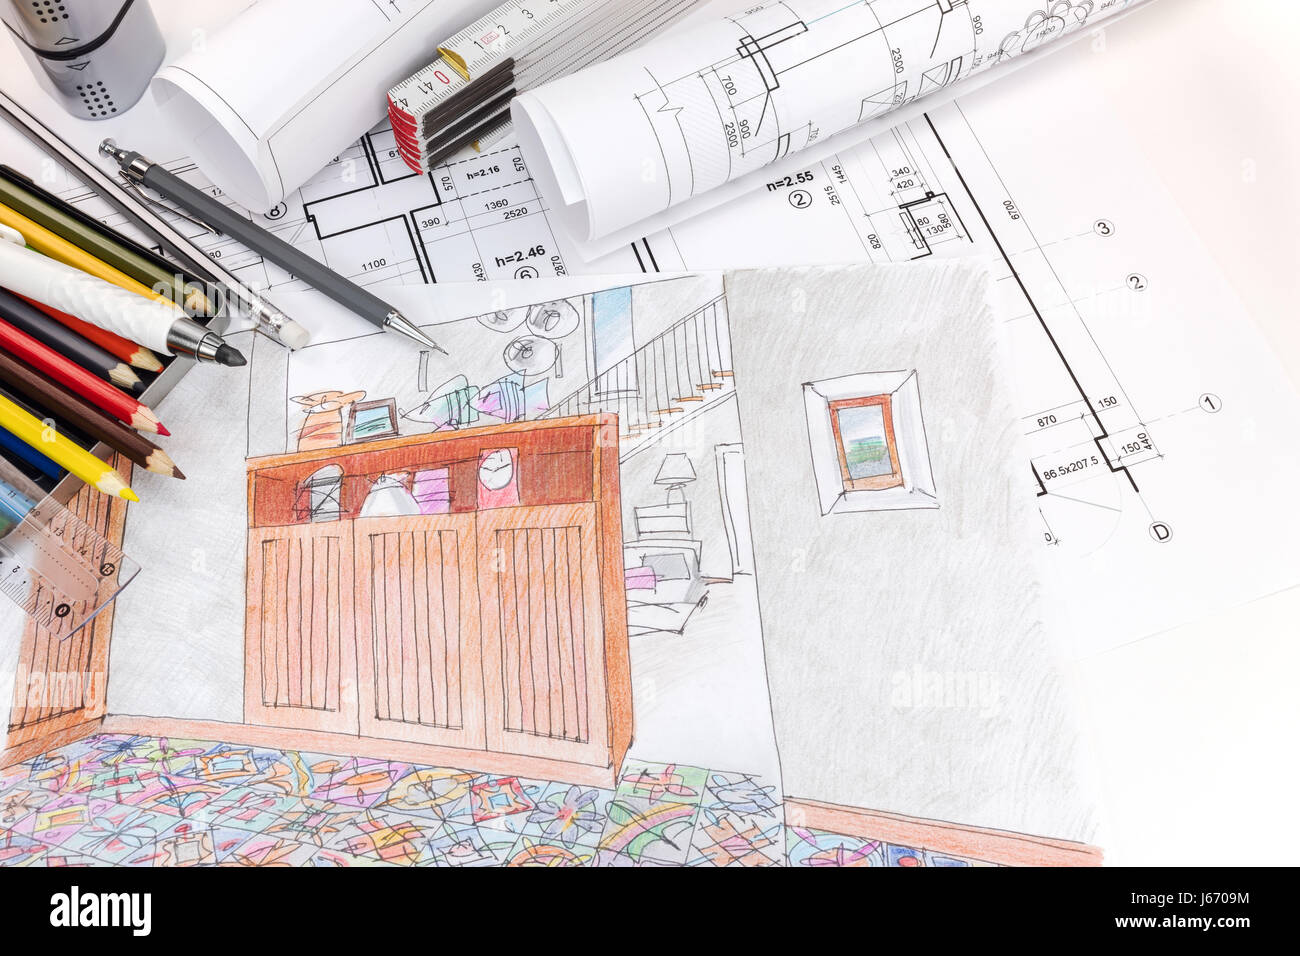 Freehand Perspective Architectural Drawing Living Stockfotos ...